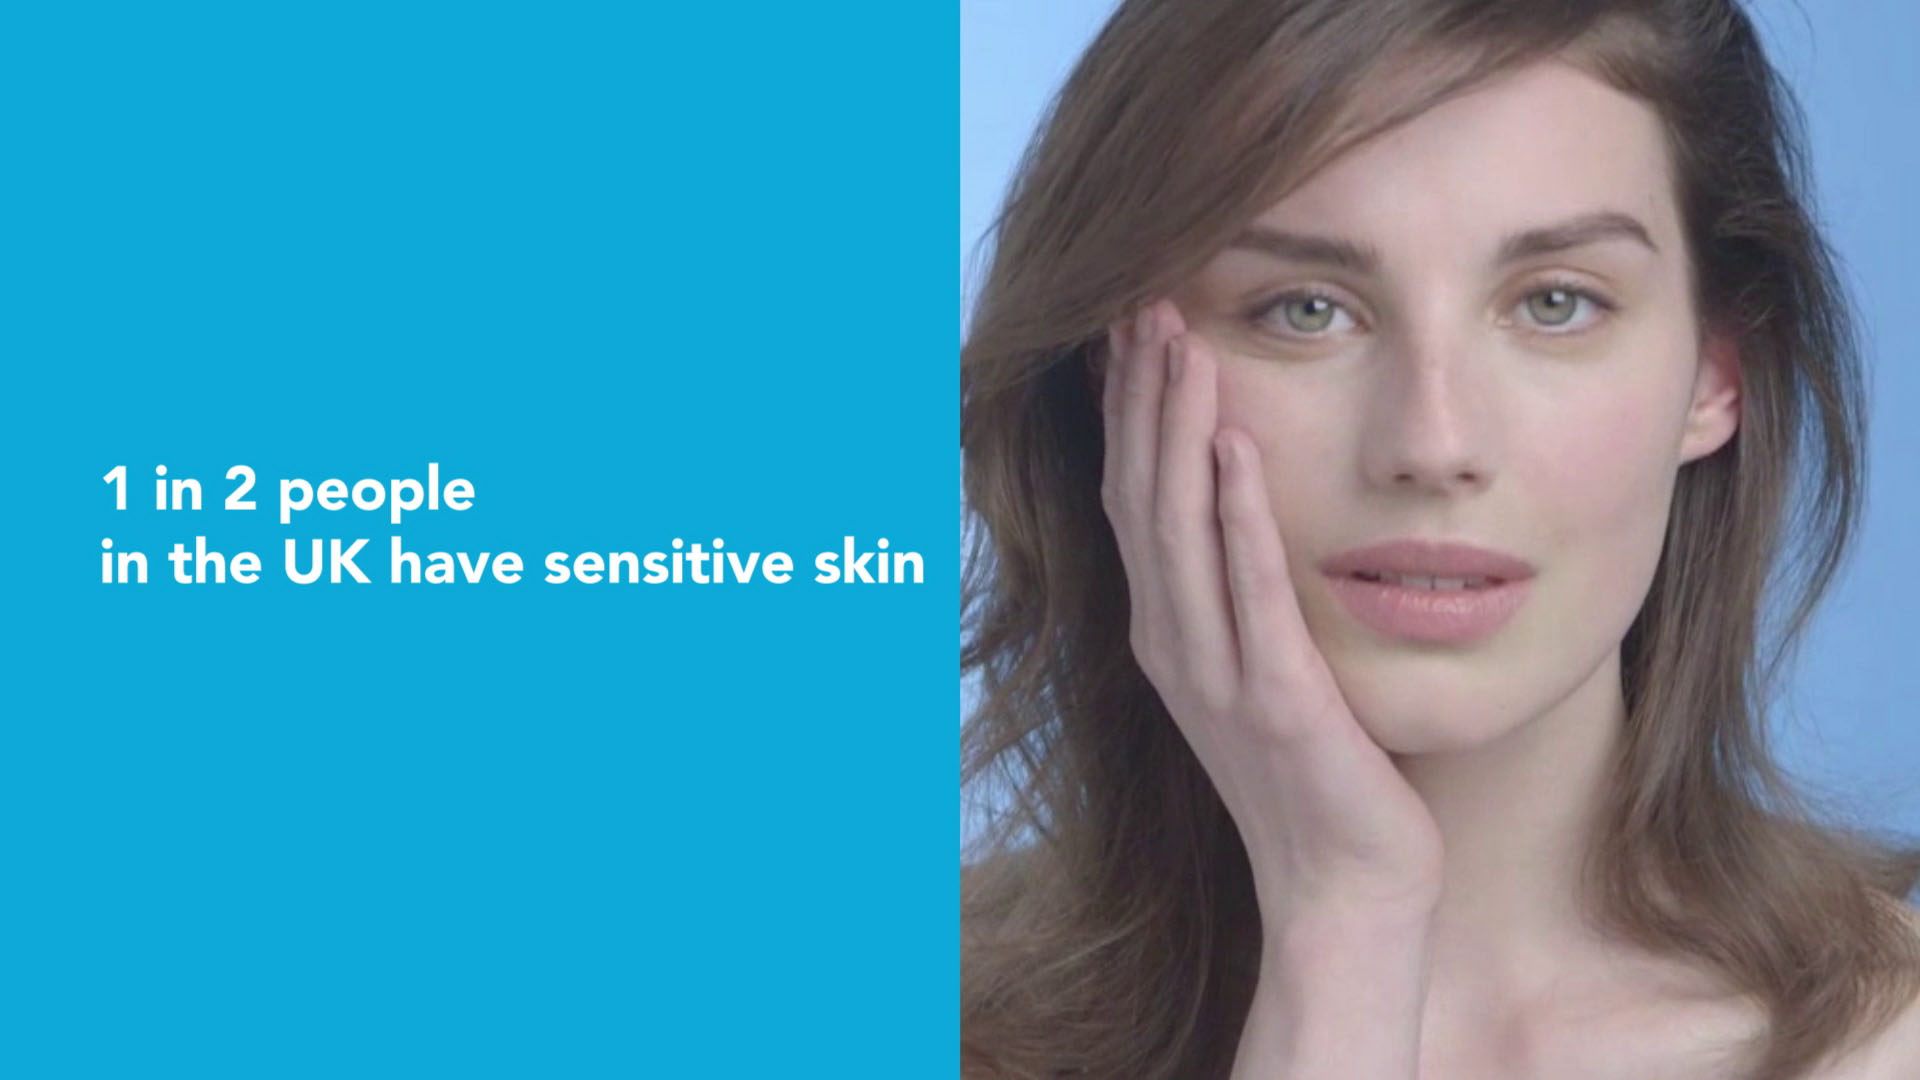 la roche posay promo video one thumbnail